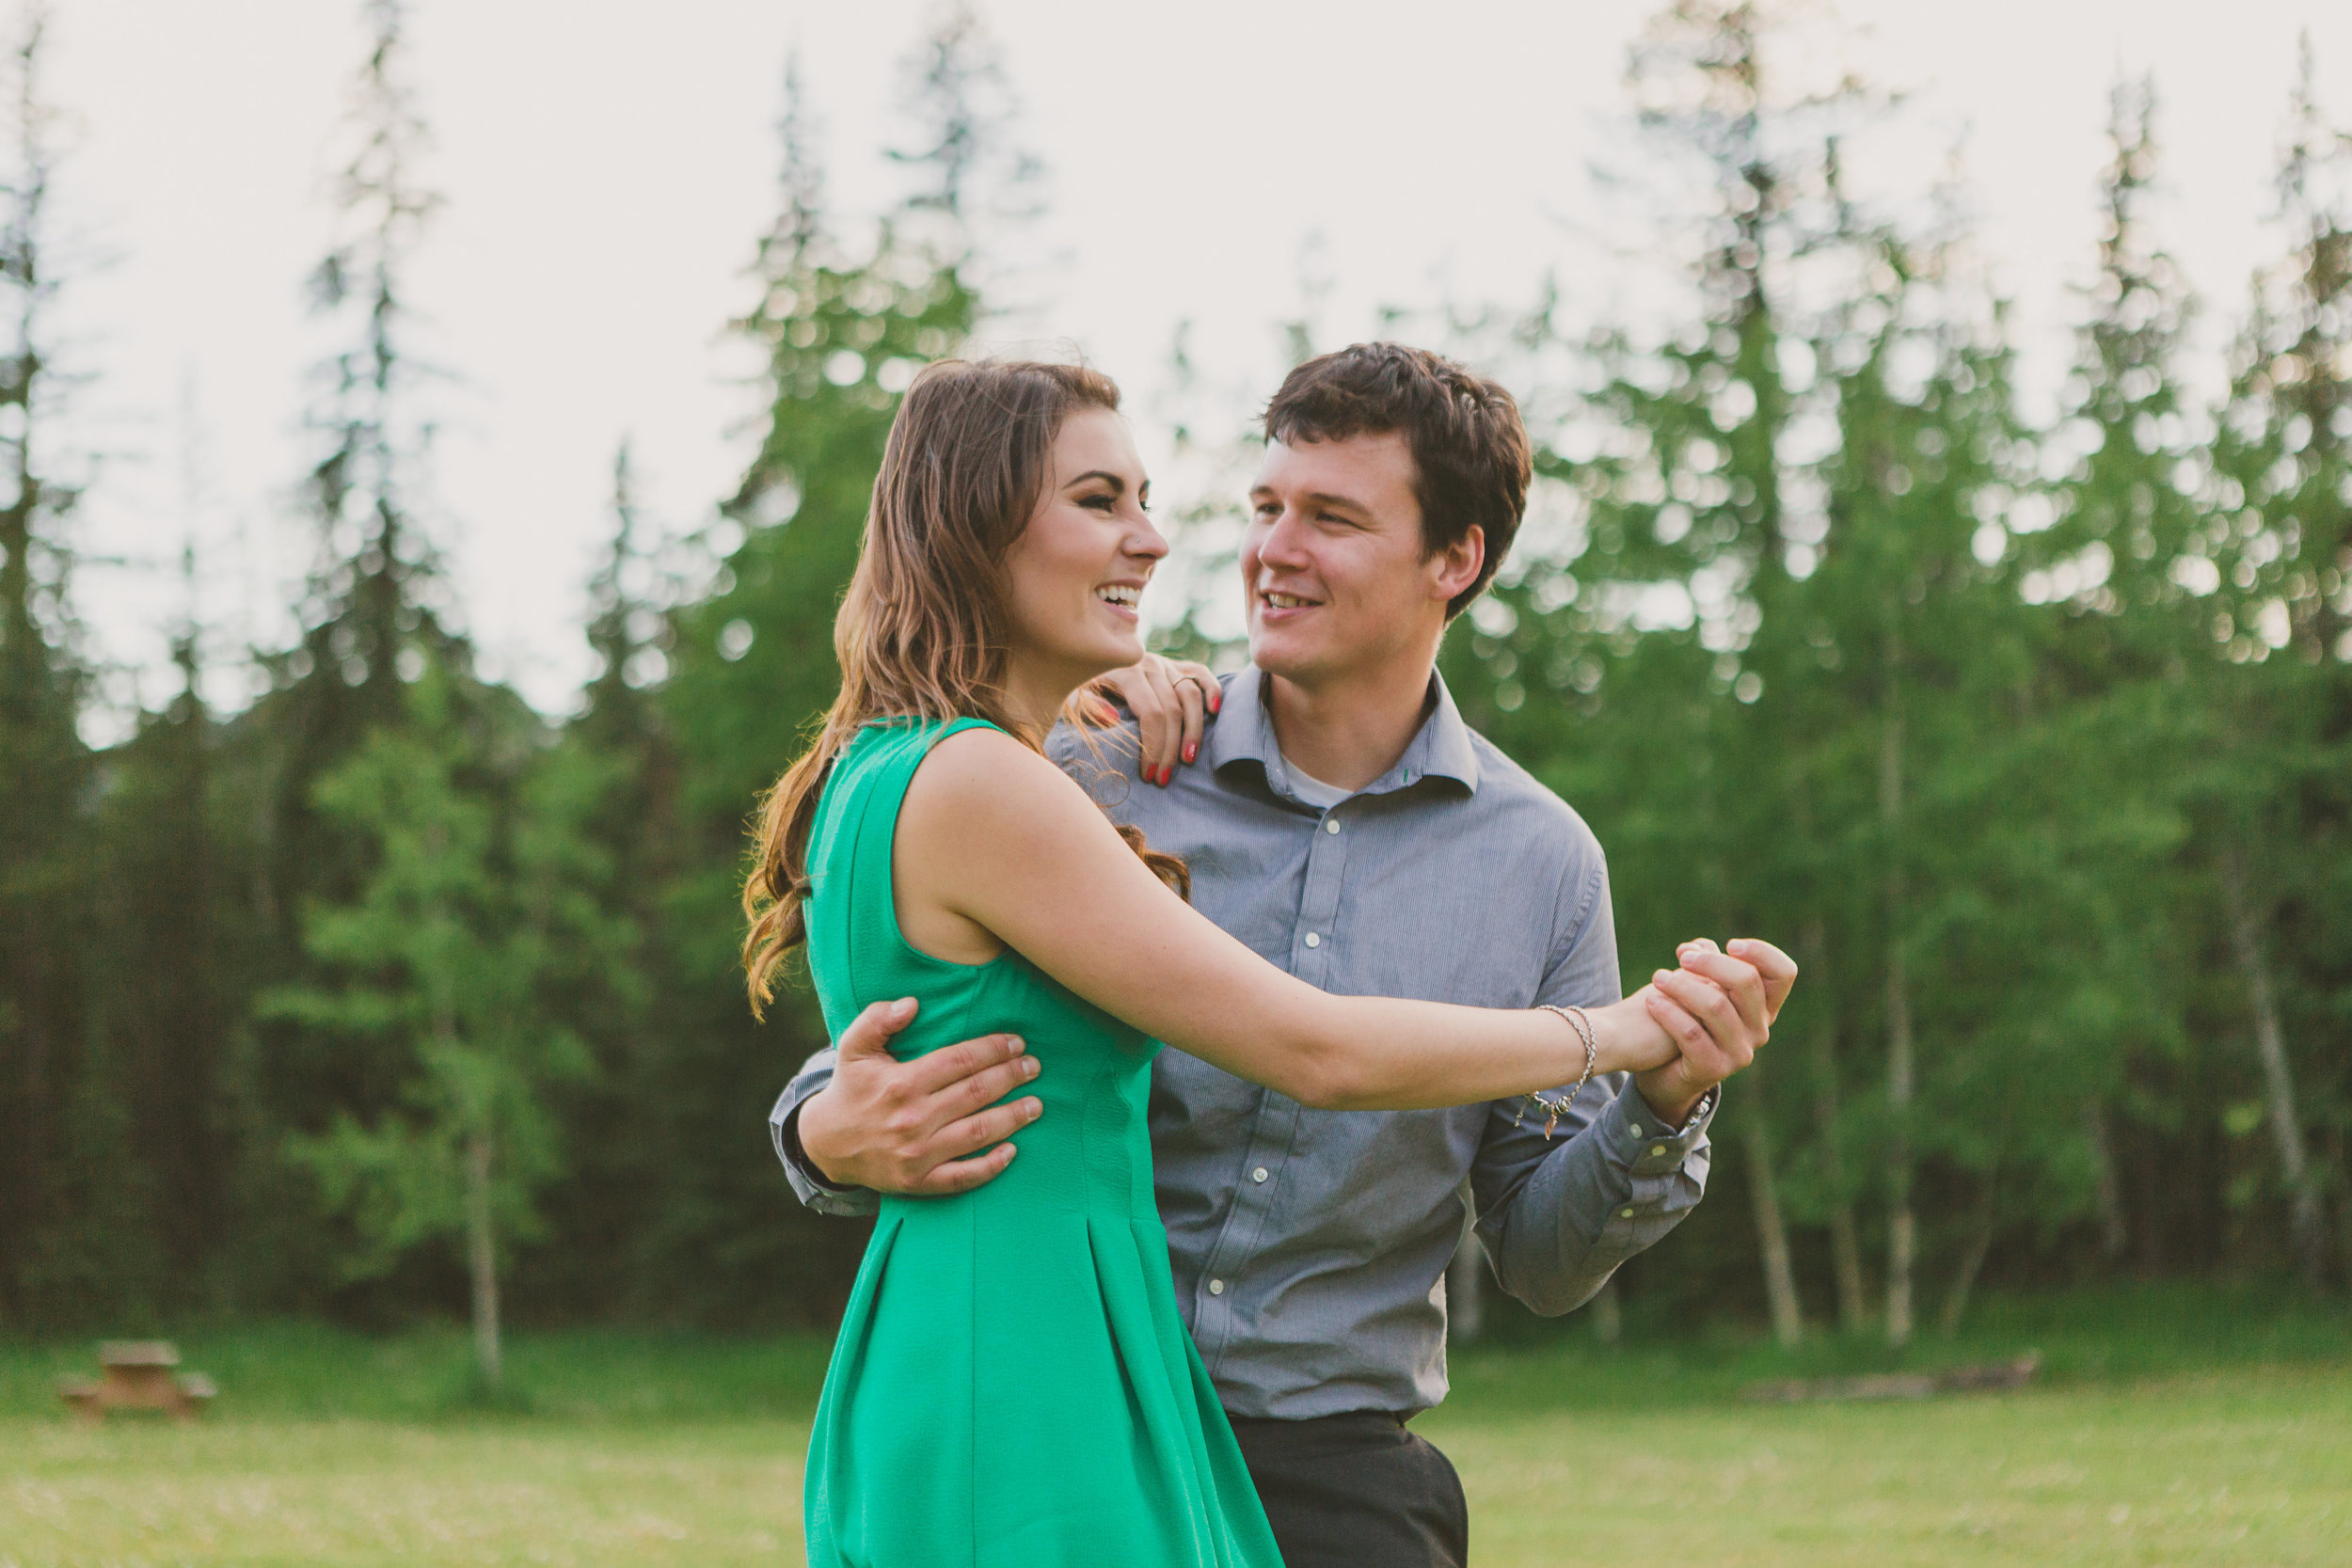 EngagementIza&Matthew (205 of 211).jpg